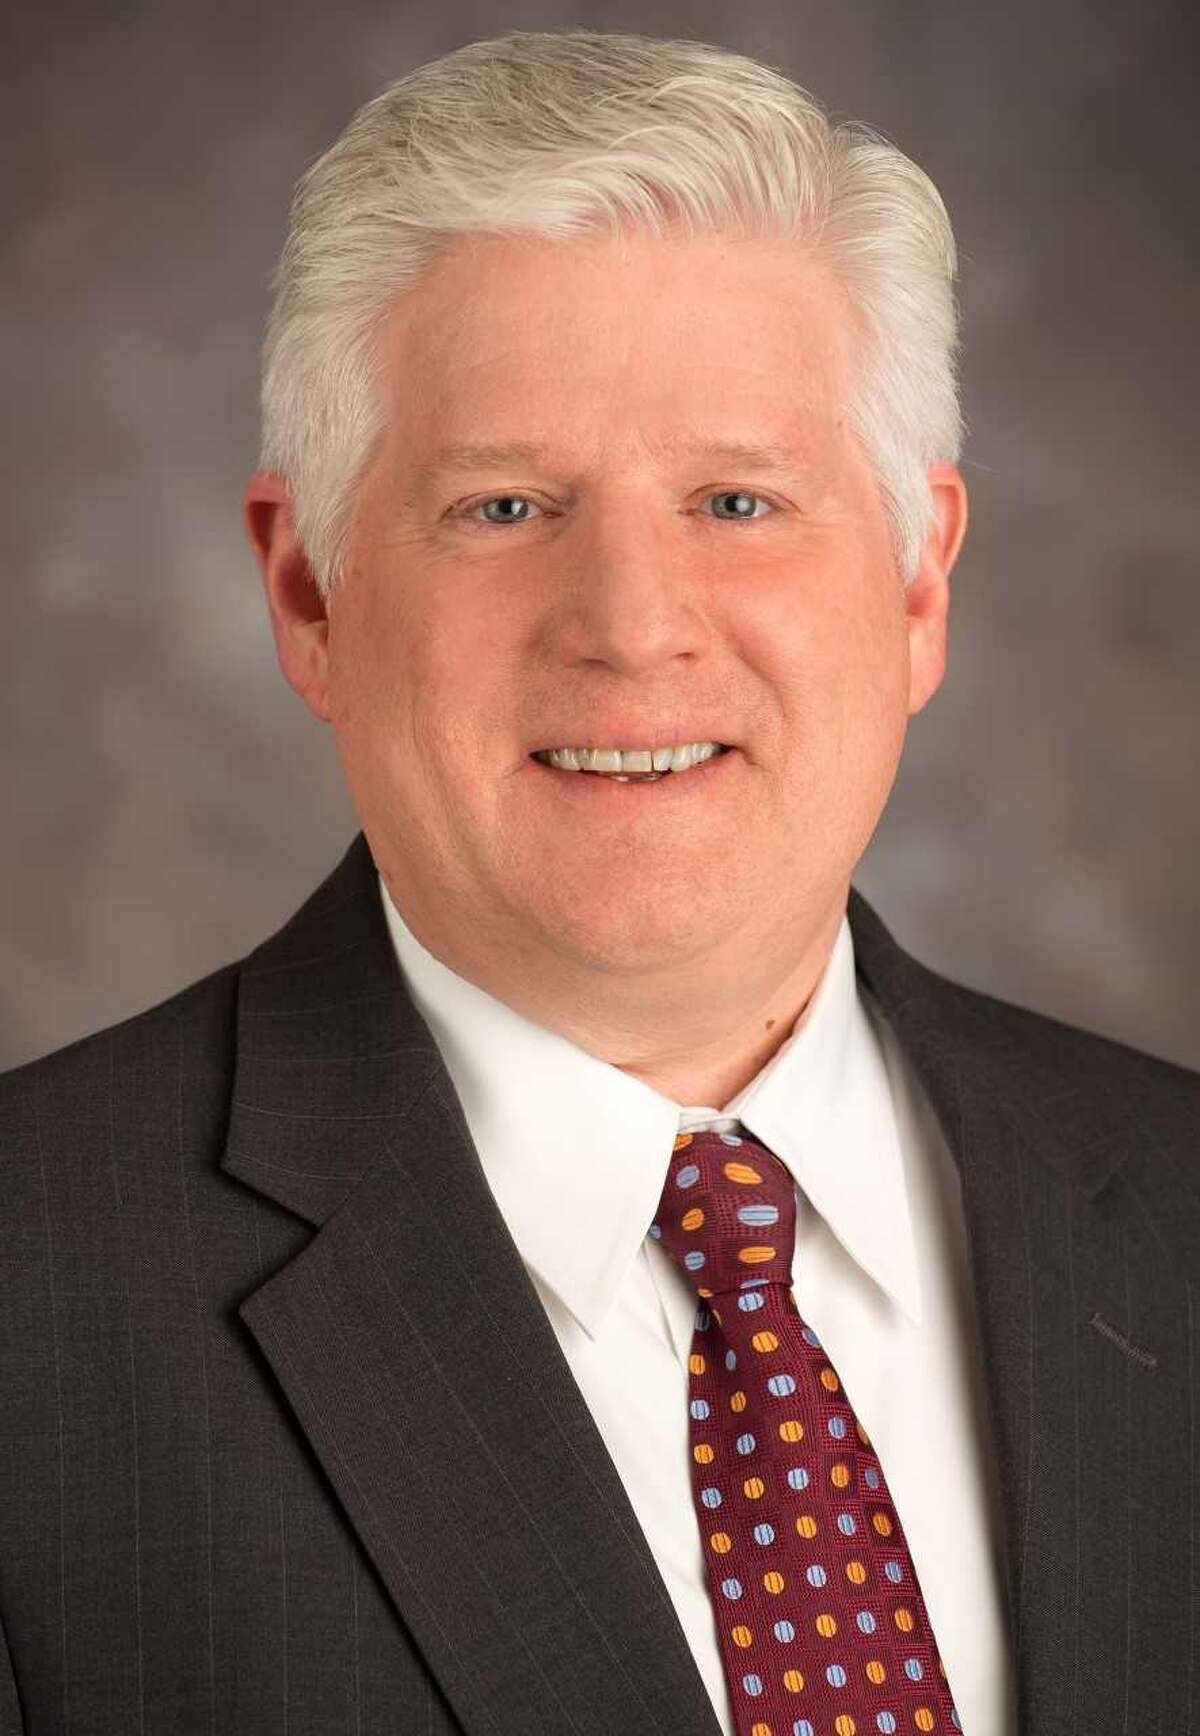 Michael Finegan has been appointed president of acute care for St. Peter's Health Partners.